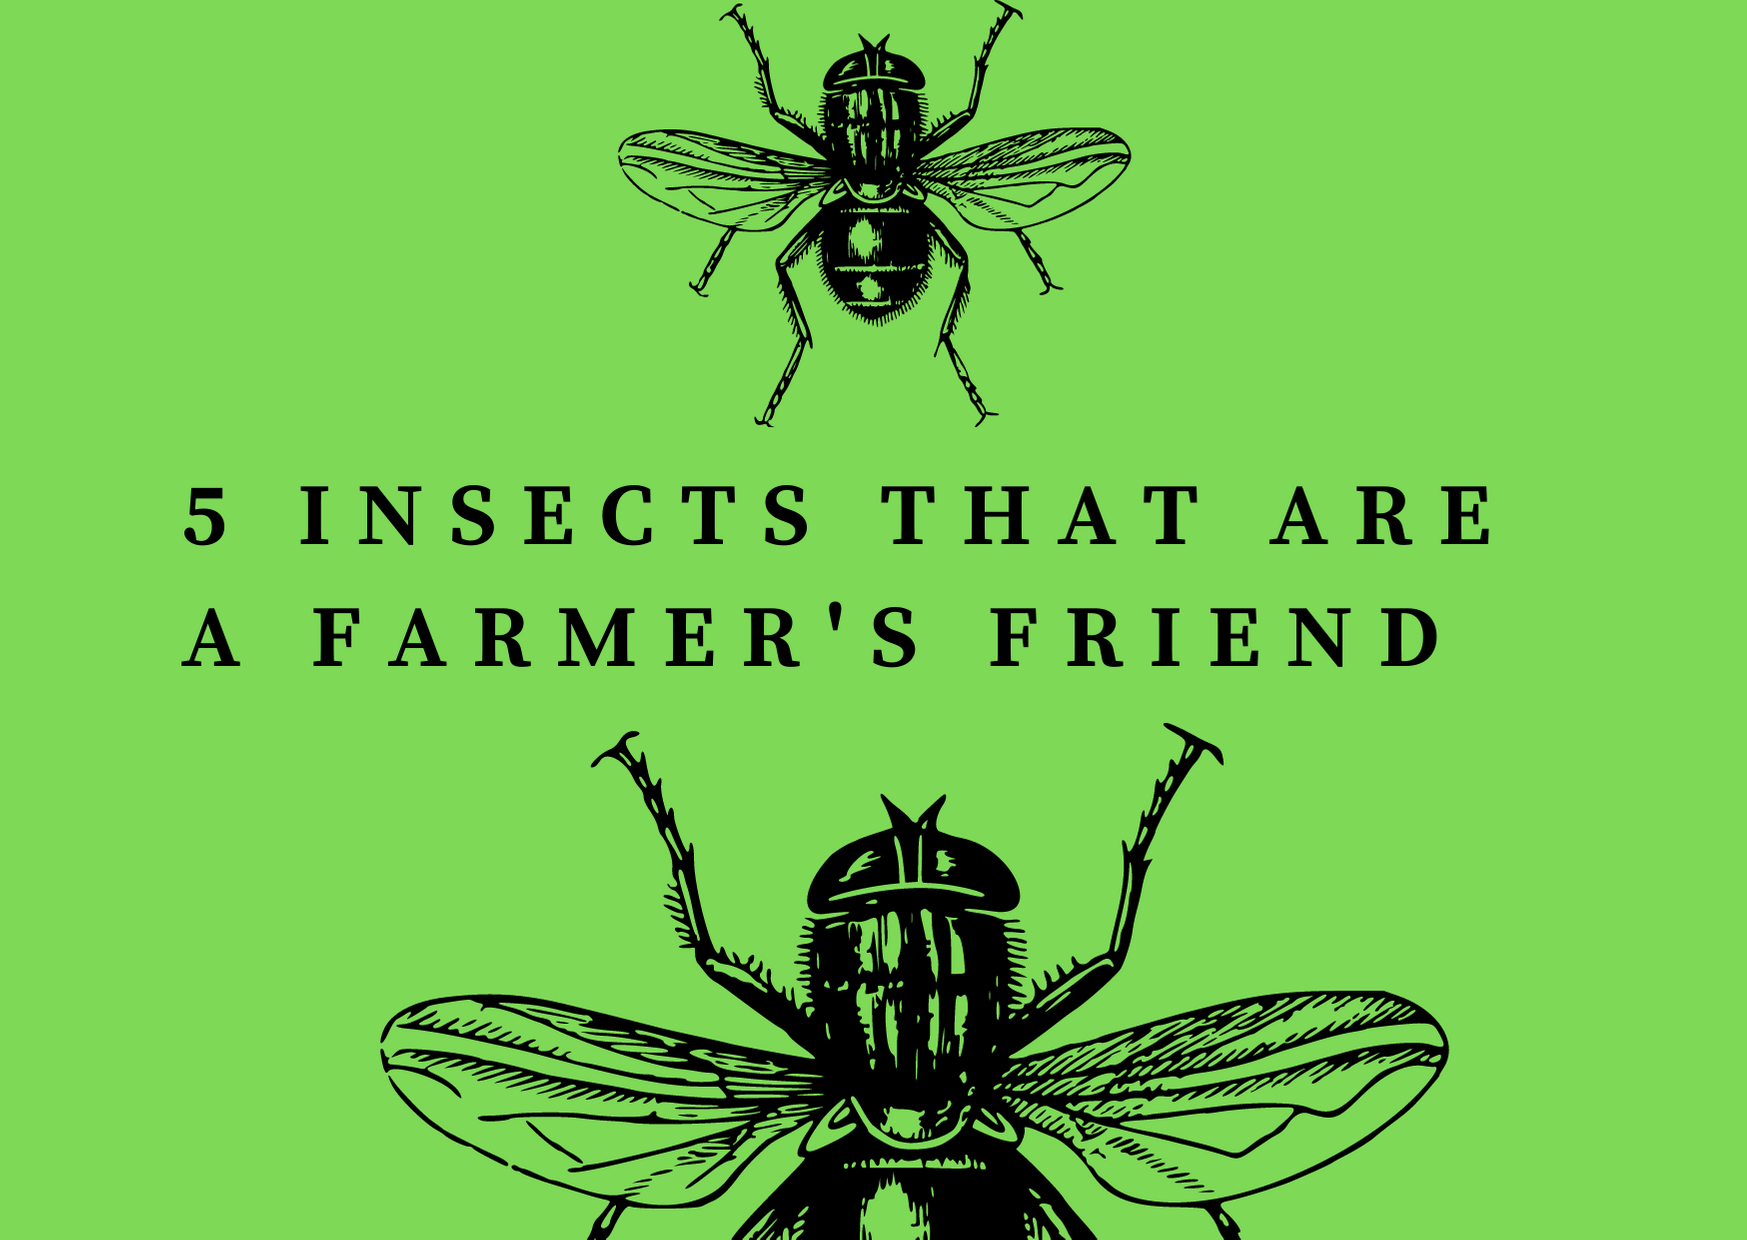 5 Insects that are a Farmer's Friend